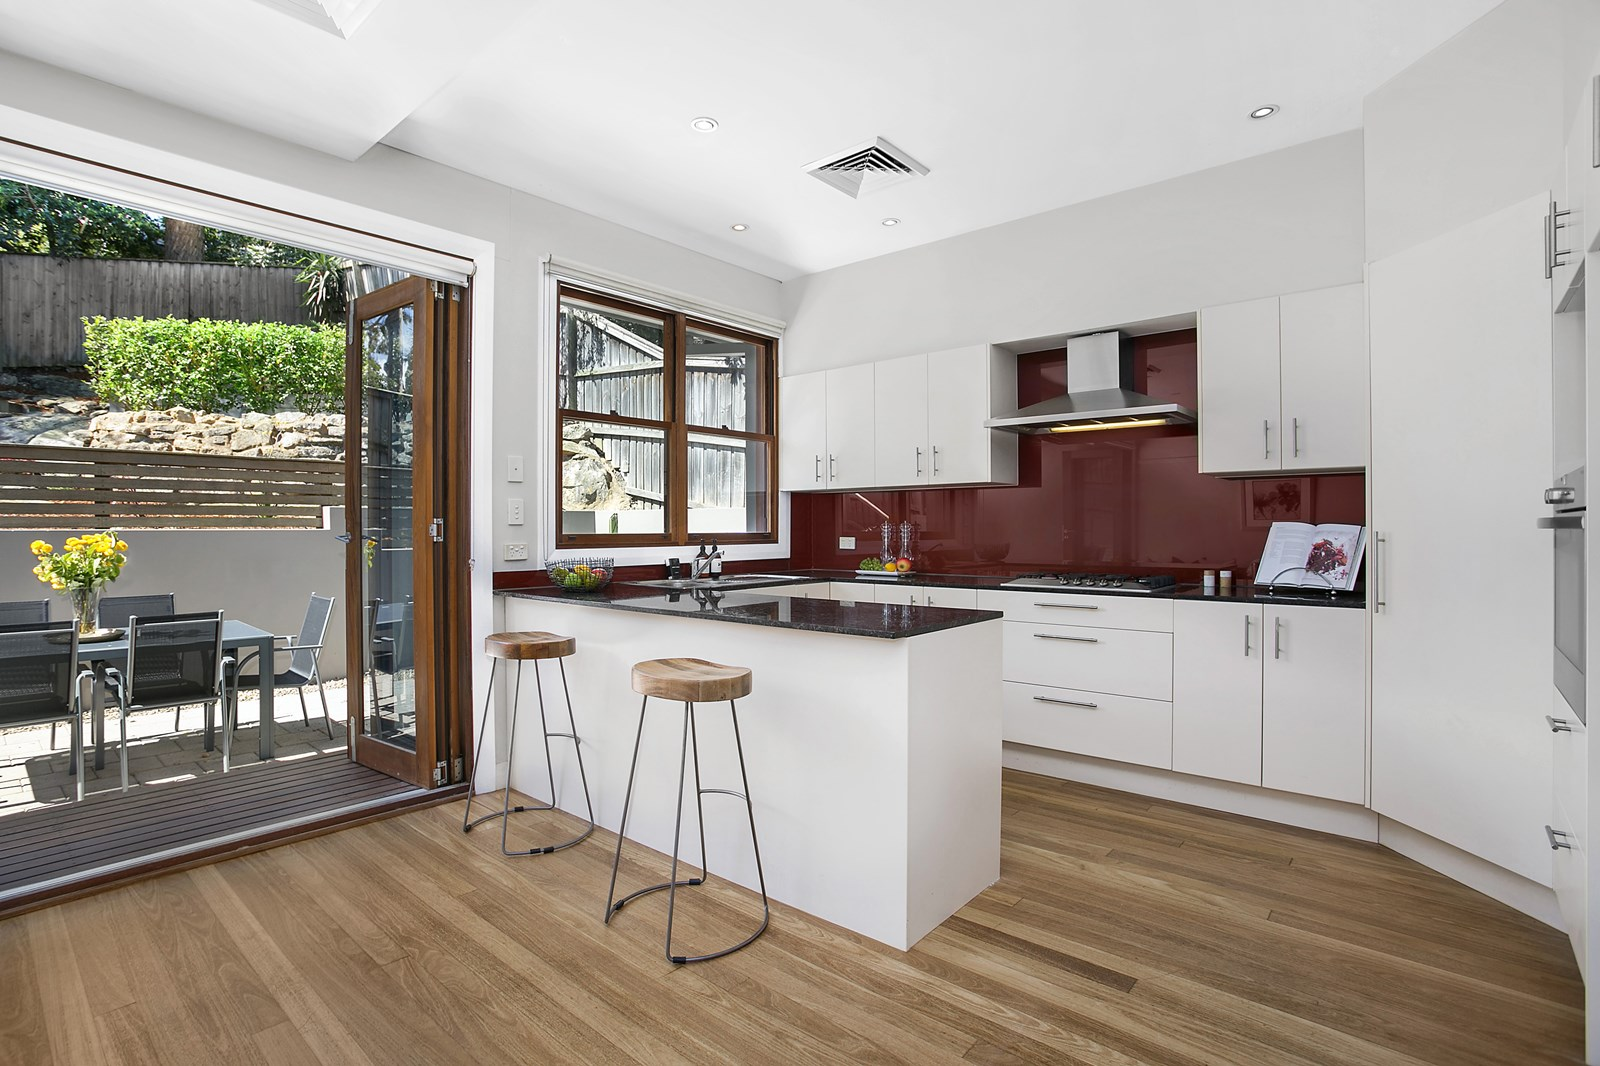 Property Report for 11 Small Street, Willoughby NSW 2068